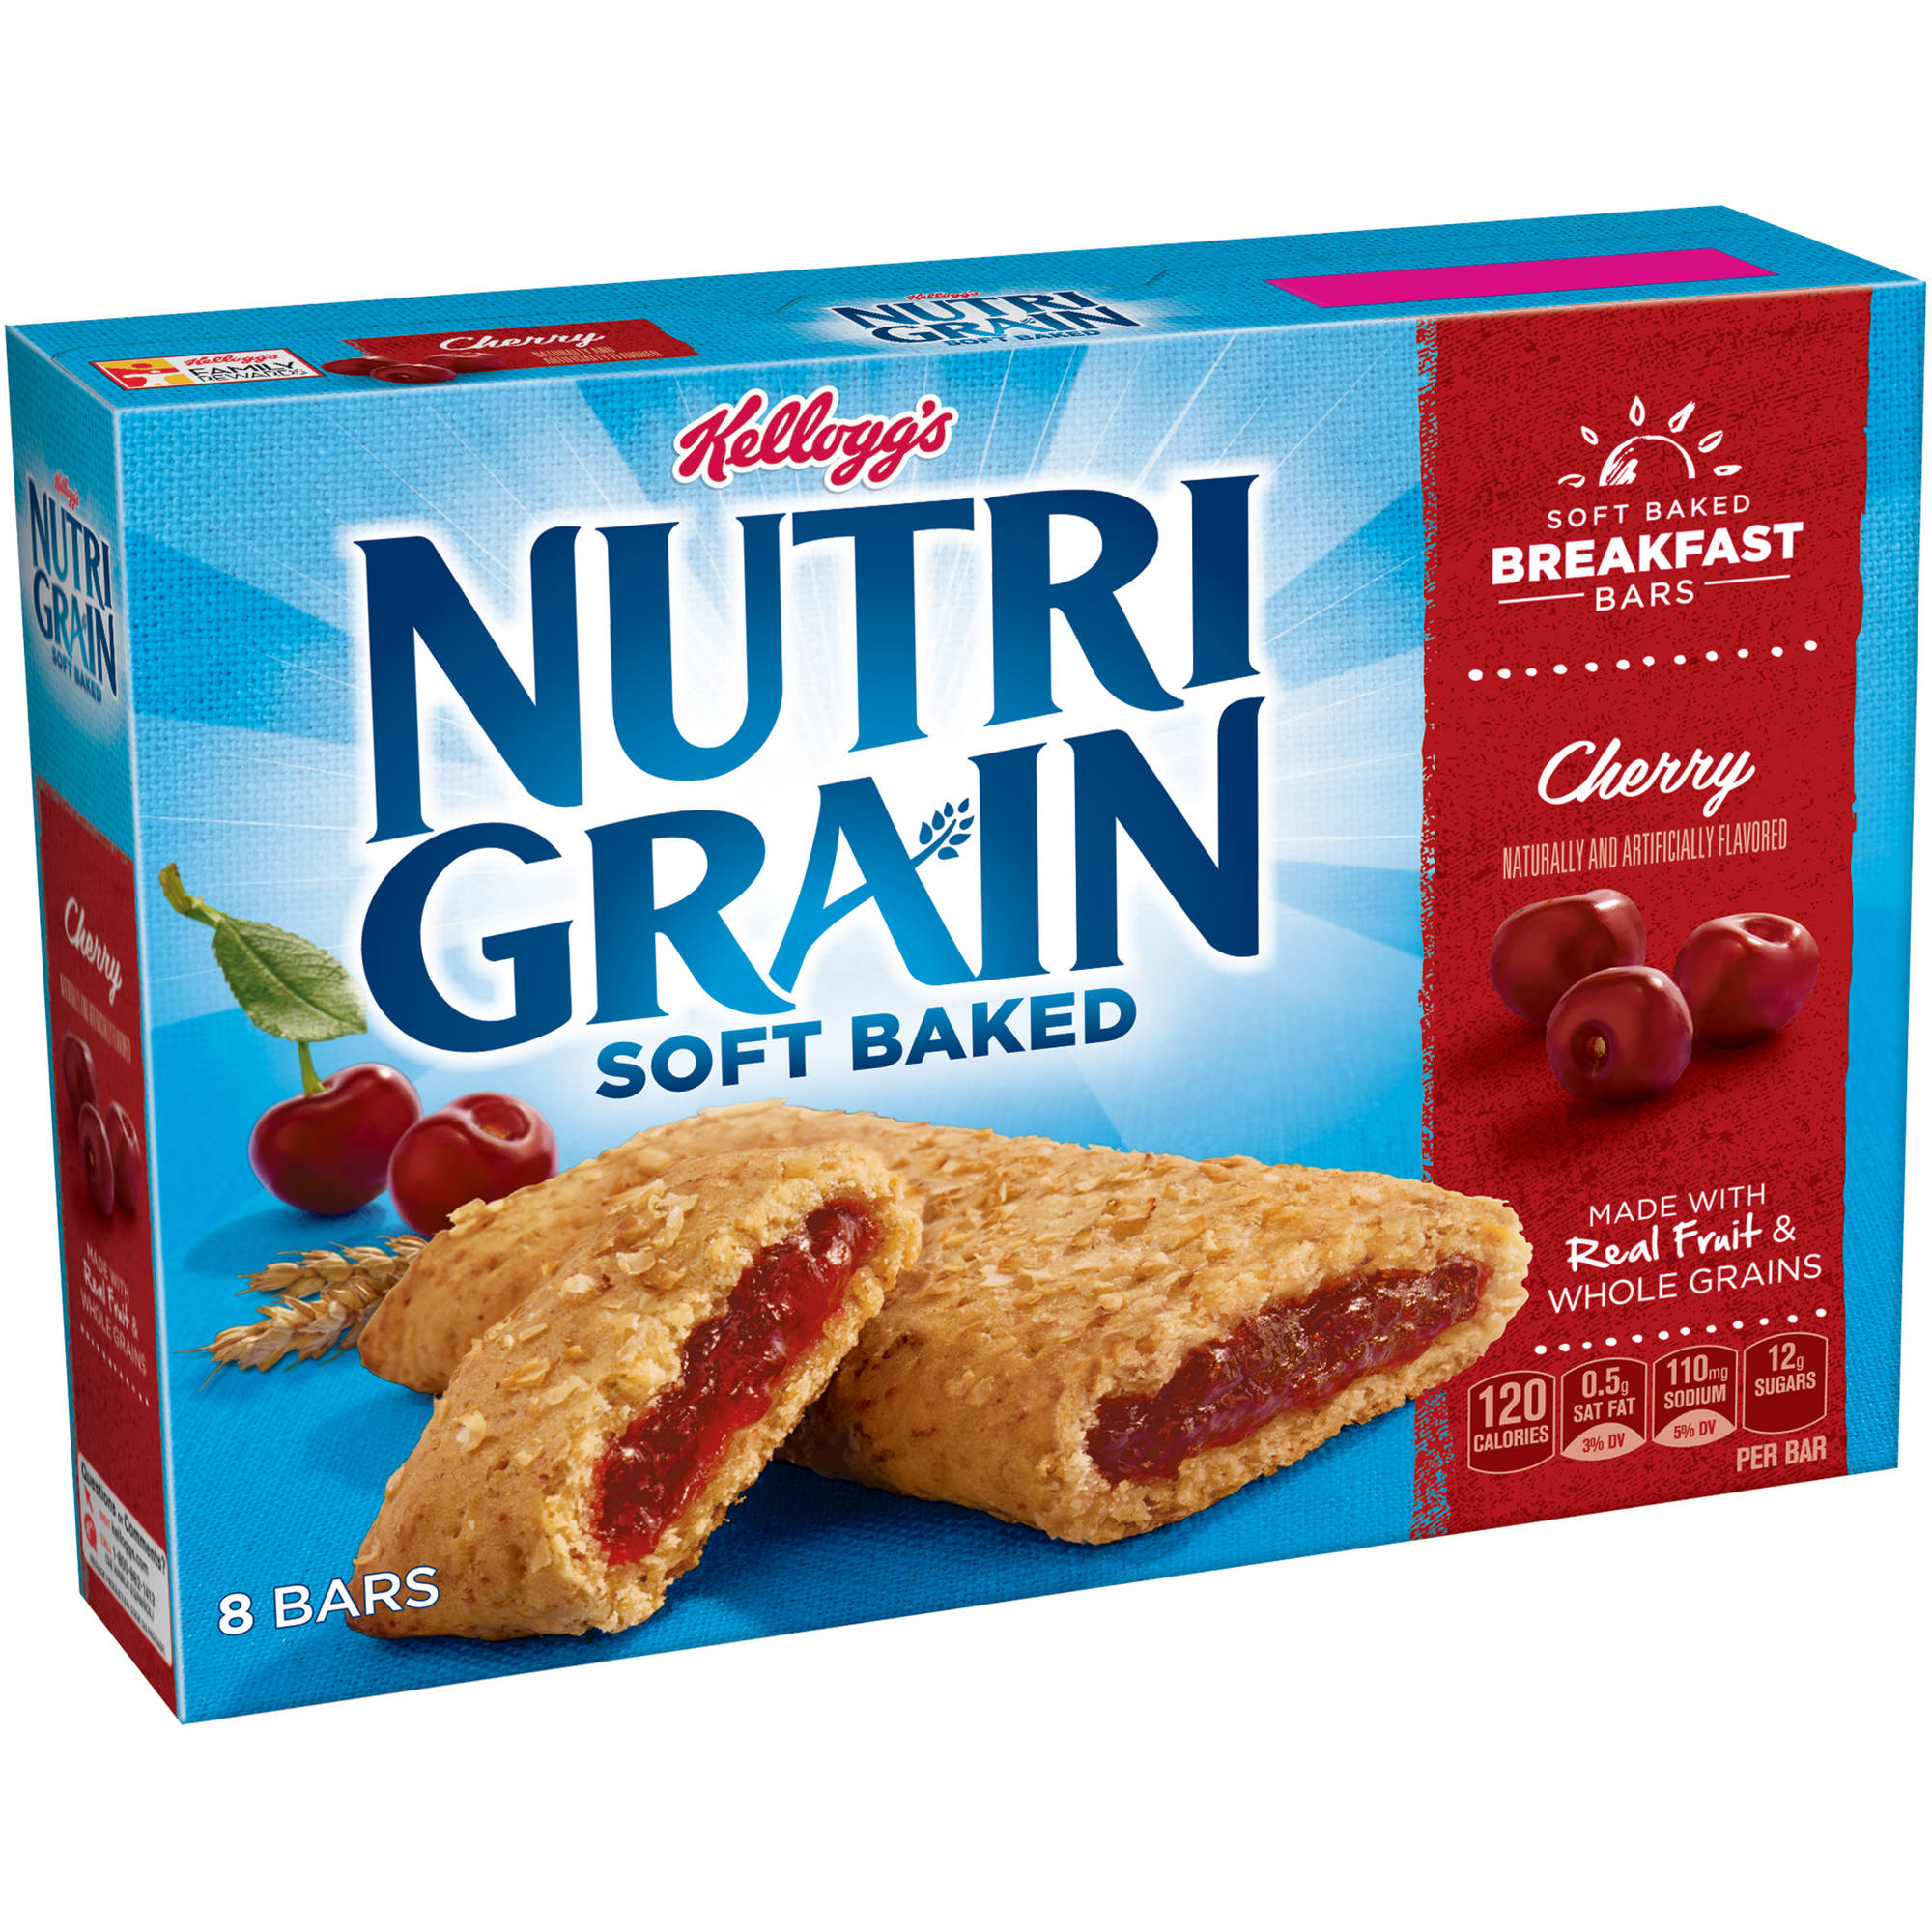 Kellogg's Nutri-Grain Soft Baked Cherry Breakfast Bars, 1.3 oz, 8 count